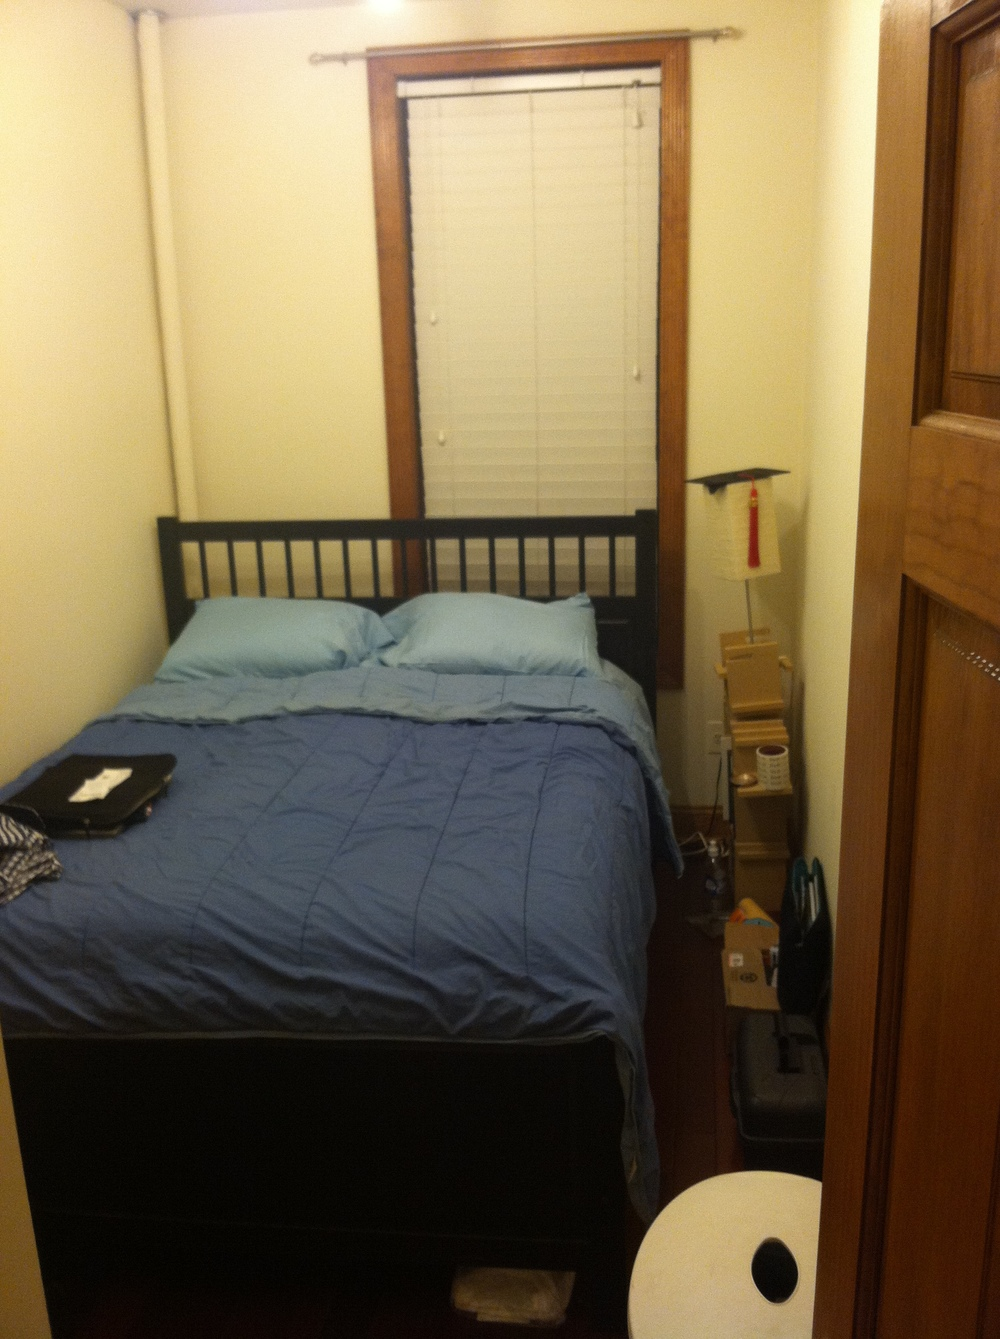 My first room in New York. I literally laughed for 5 minutes looking at this now.